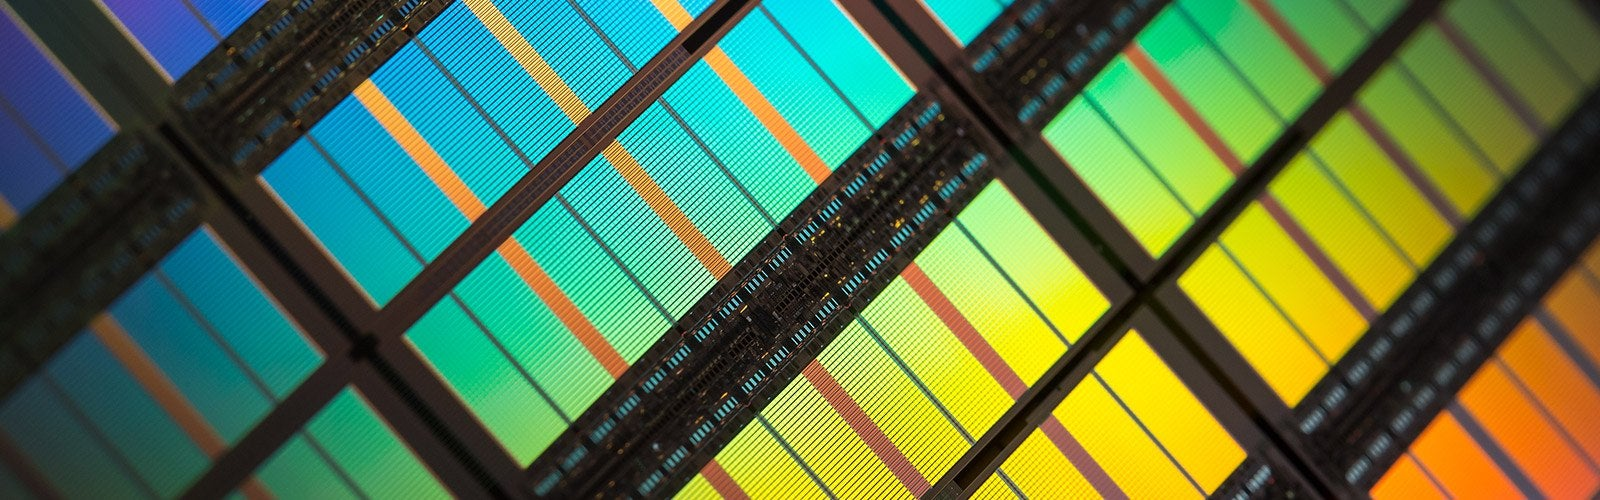 Where Will Micron Technology Be in 10 Years? | The Motley Fool